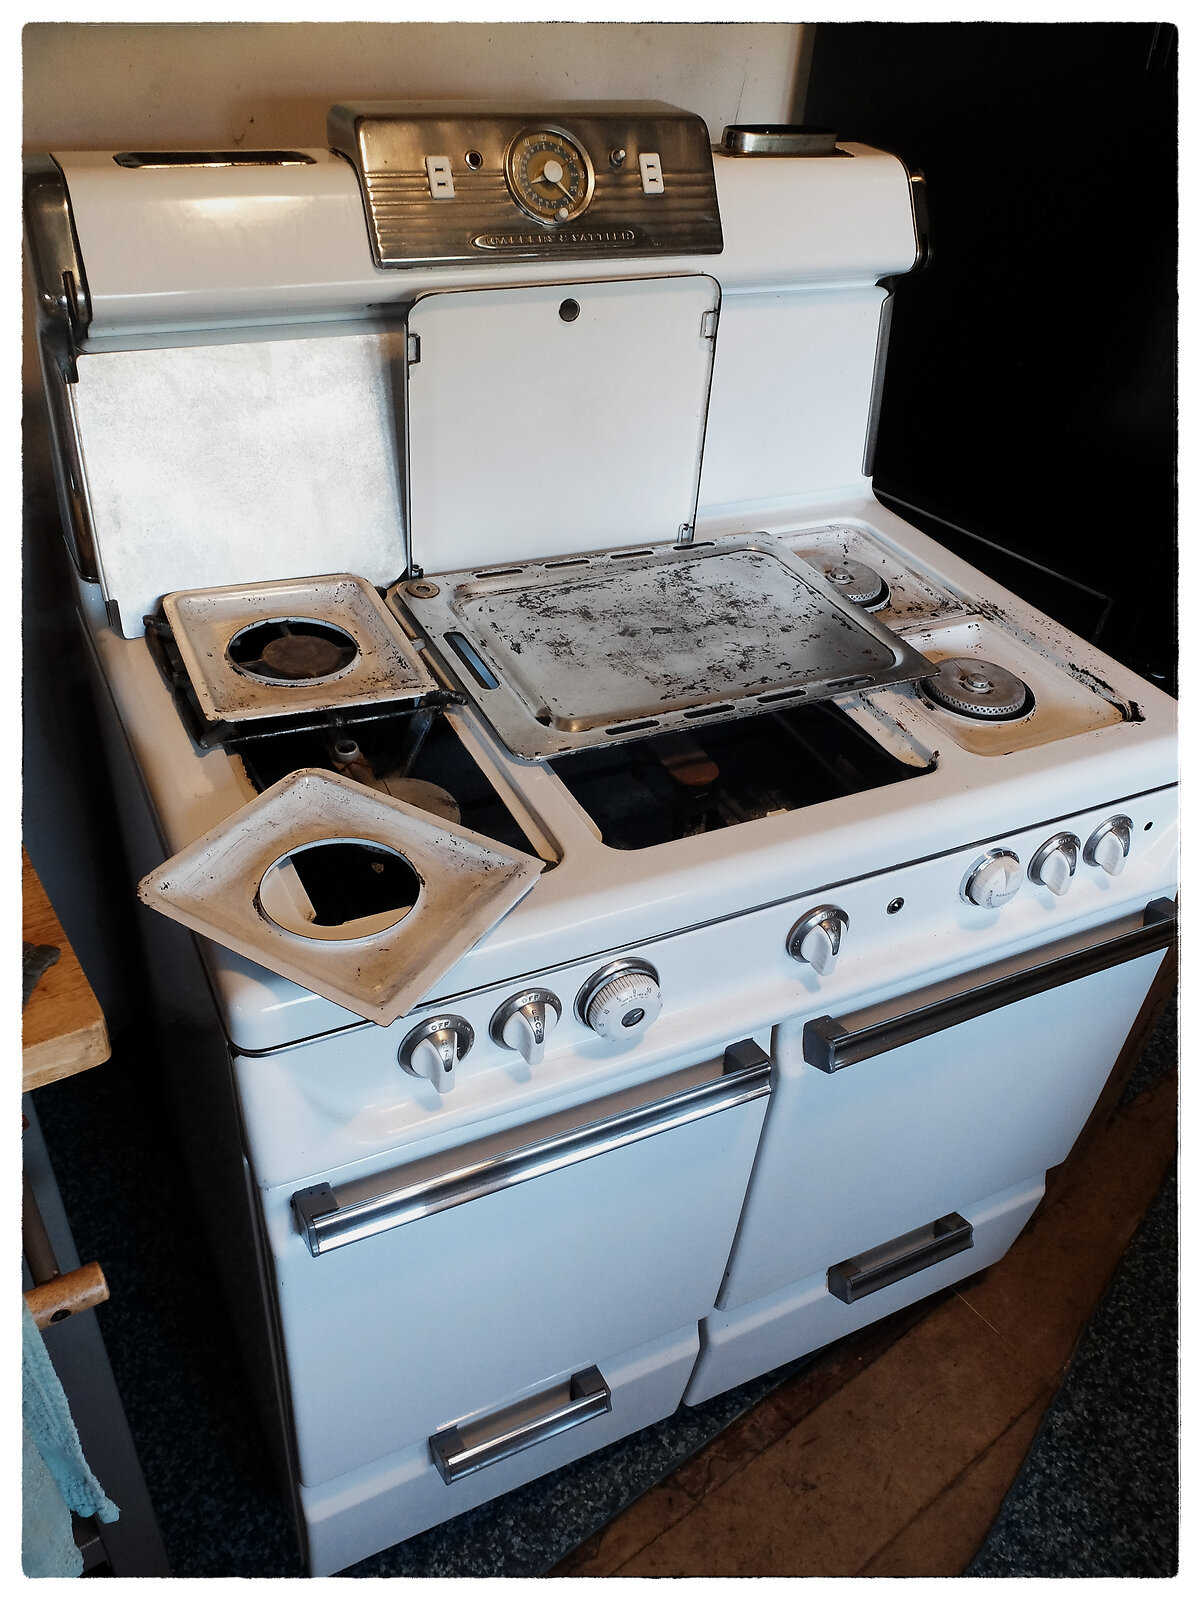 X30_July18_Stove_cleaning(ClassicChrome).jpg